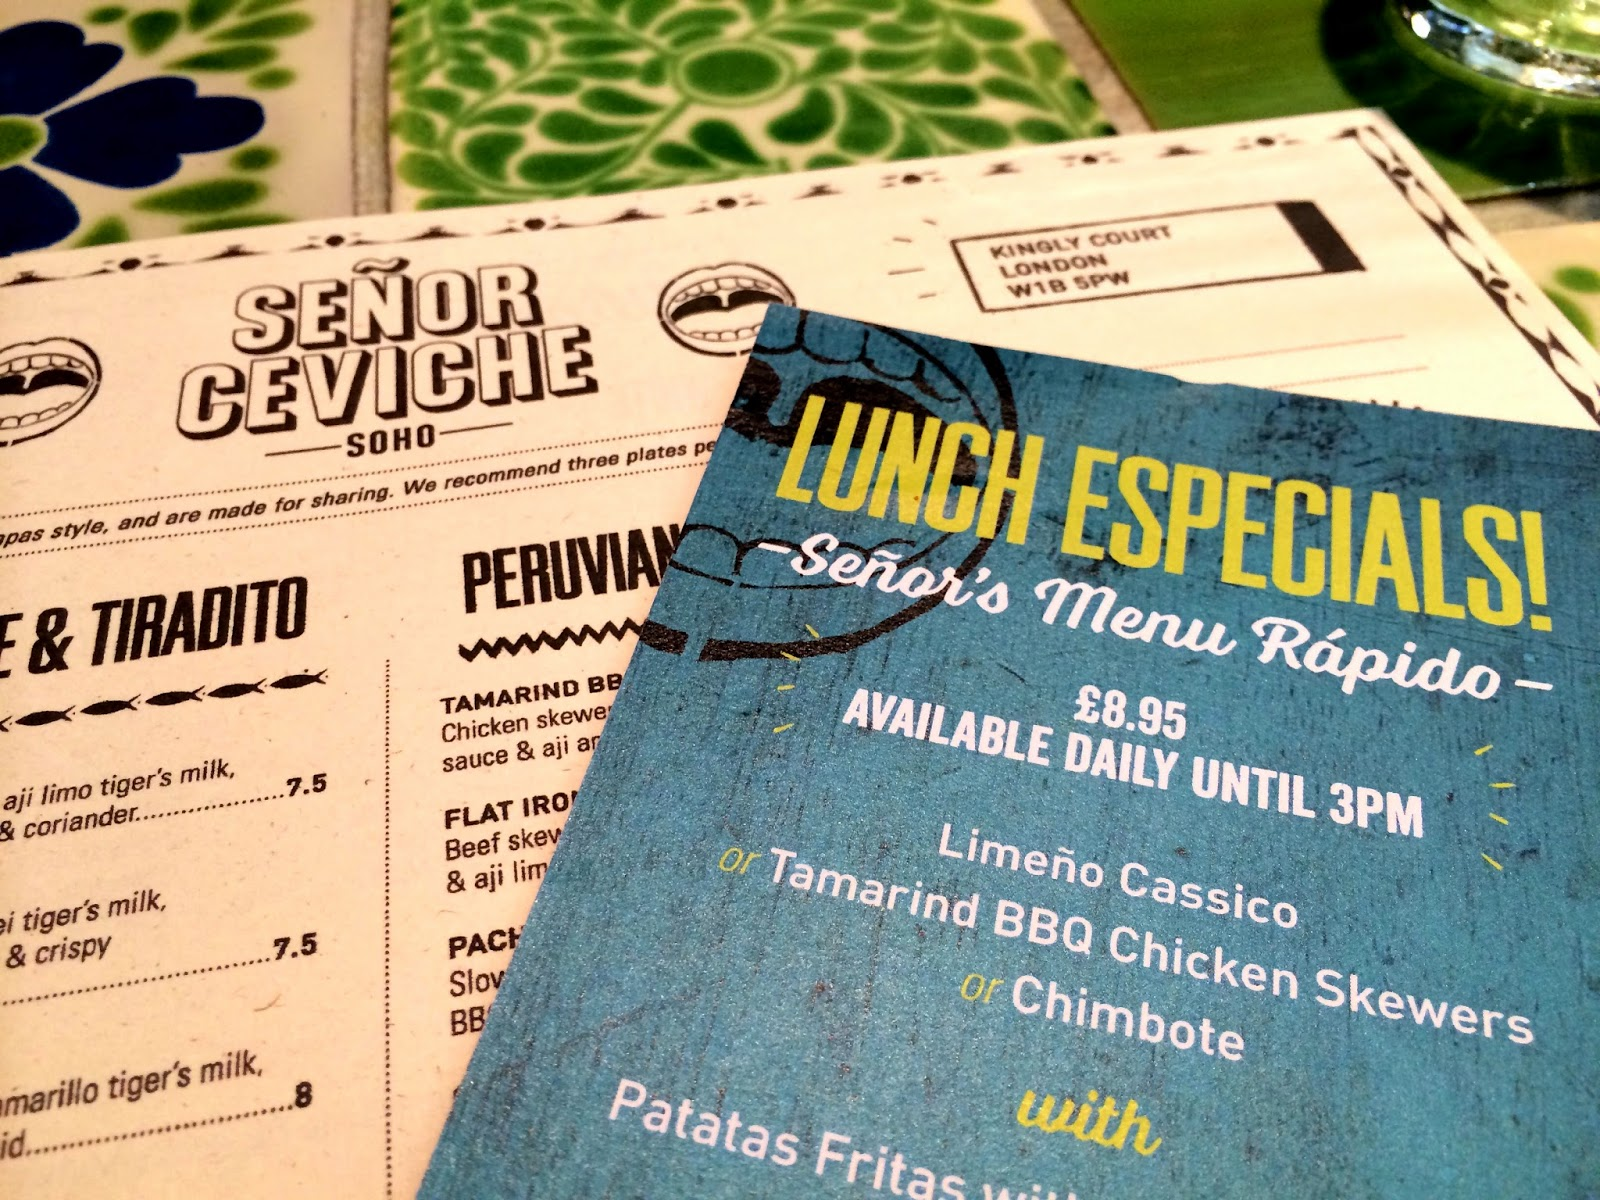 Senor Ceviche - London lunch menu